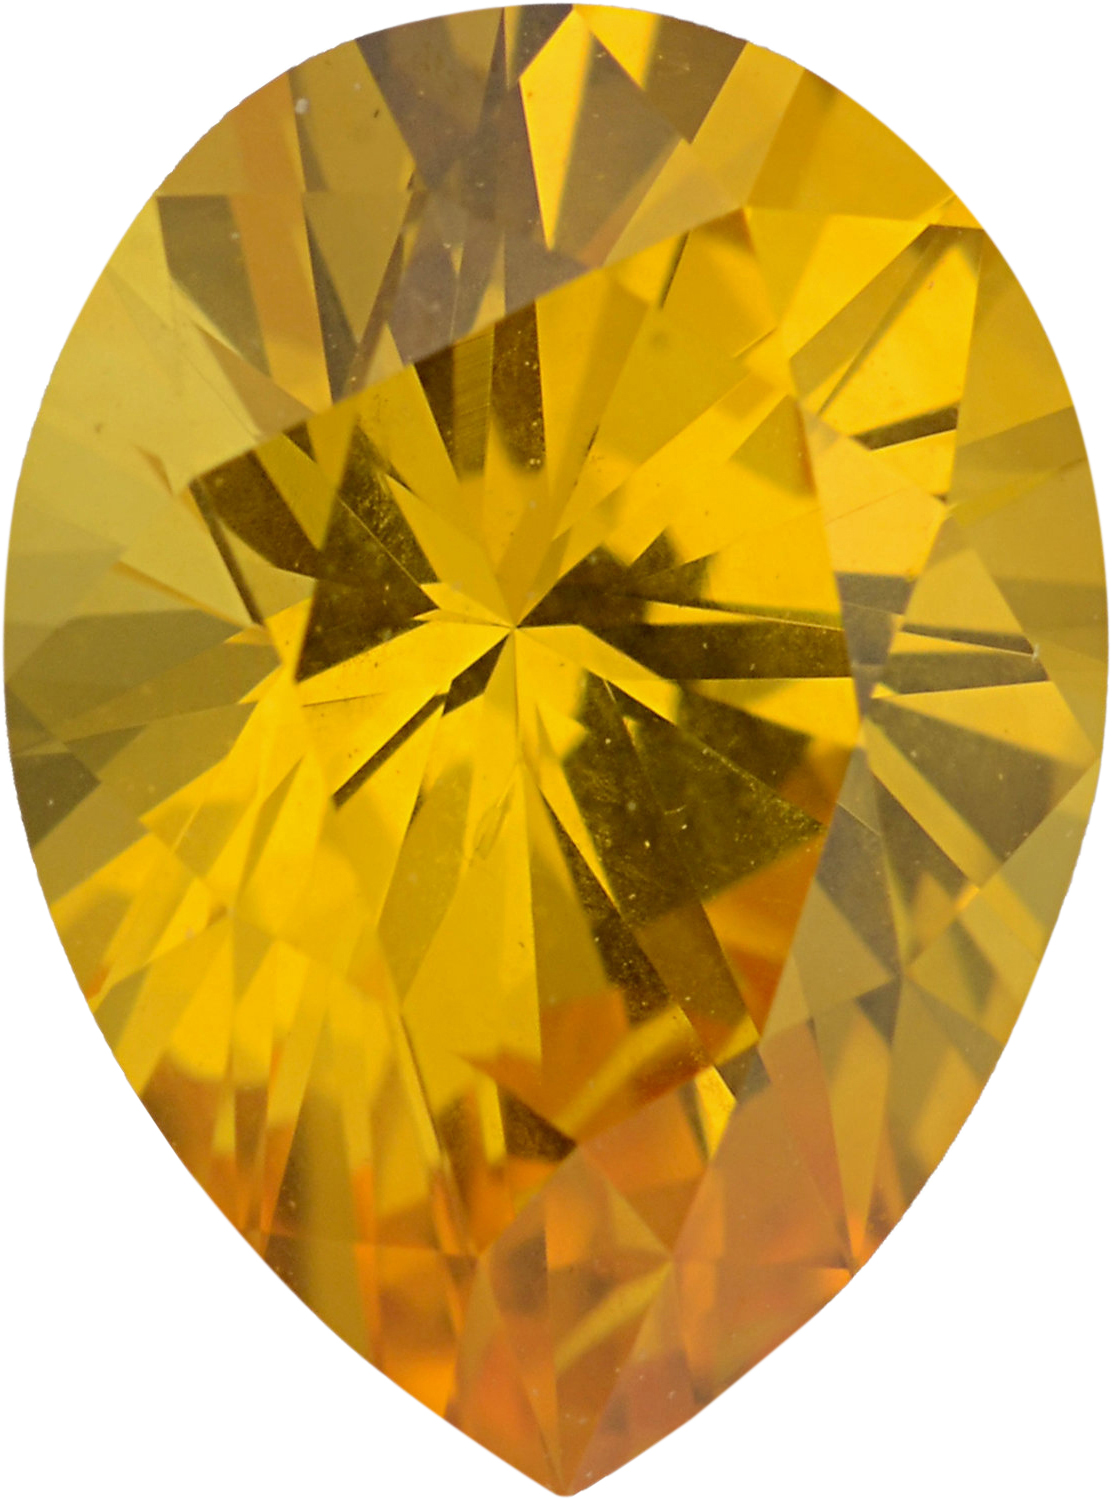 Bargain Priced Sapphire Loose Gem in Pear Cut, Light Orangy Yellow, 7.97 x 5.96  mm, 1.26 Carats